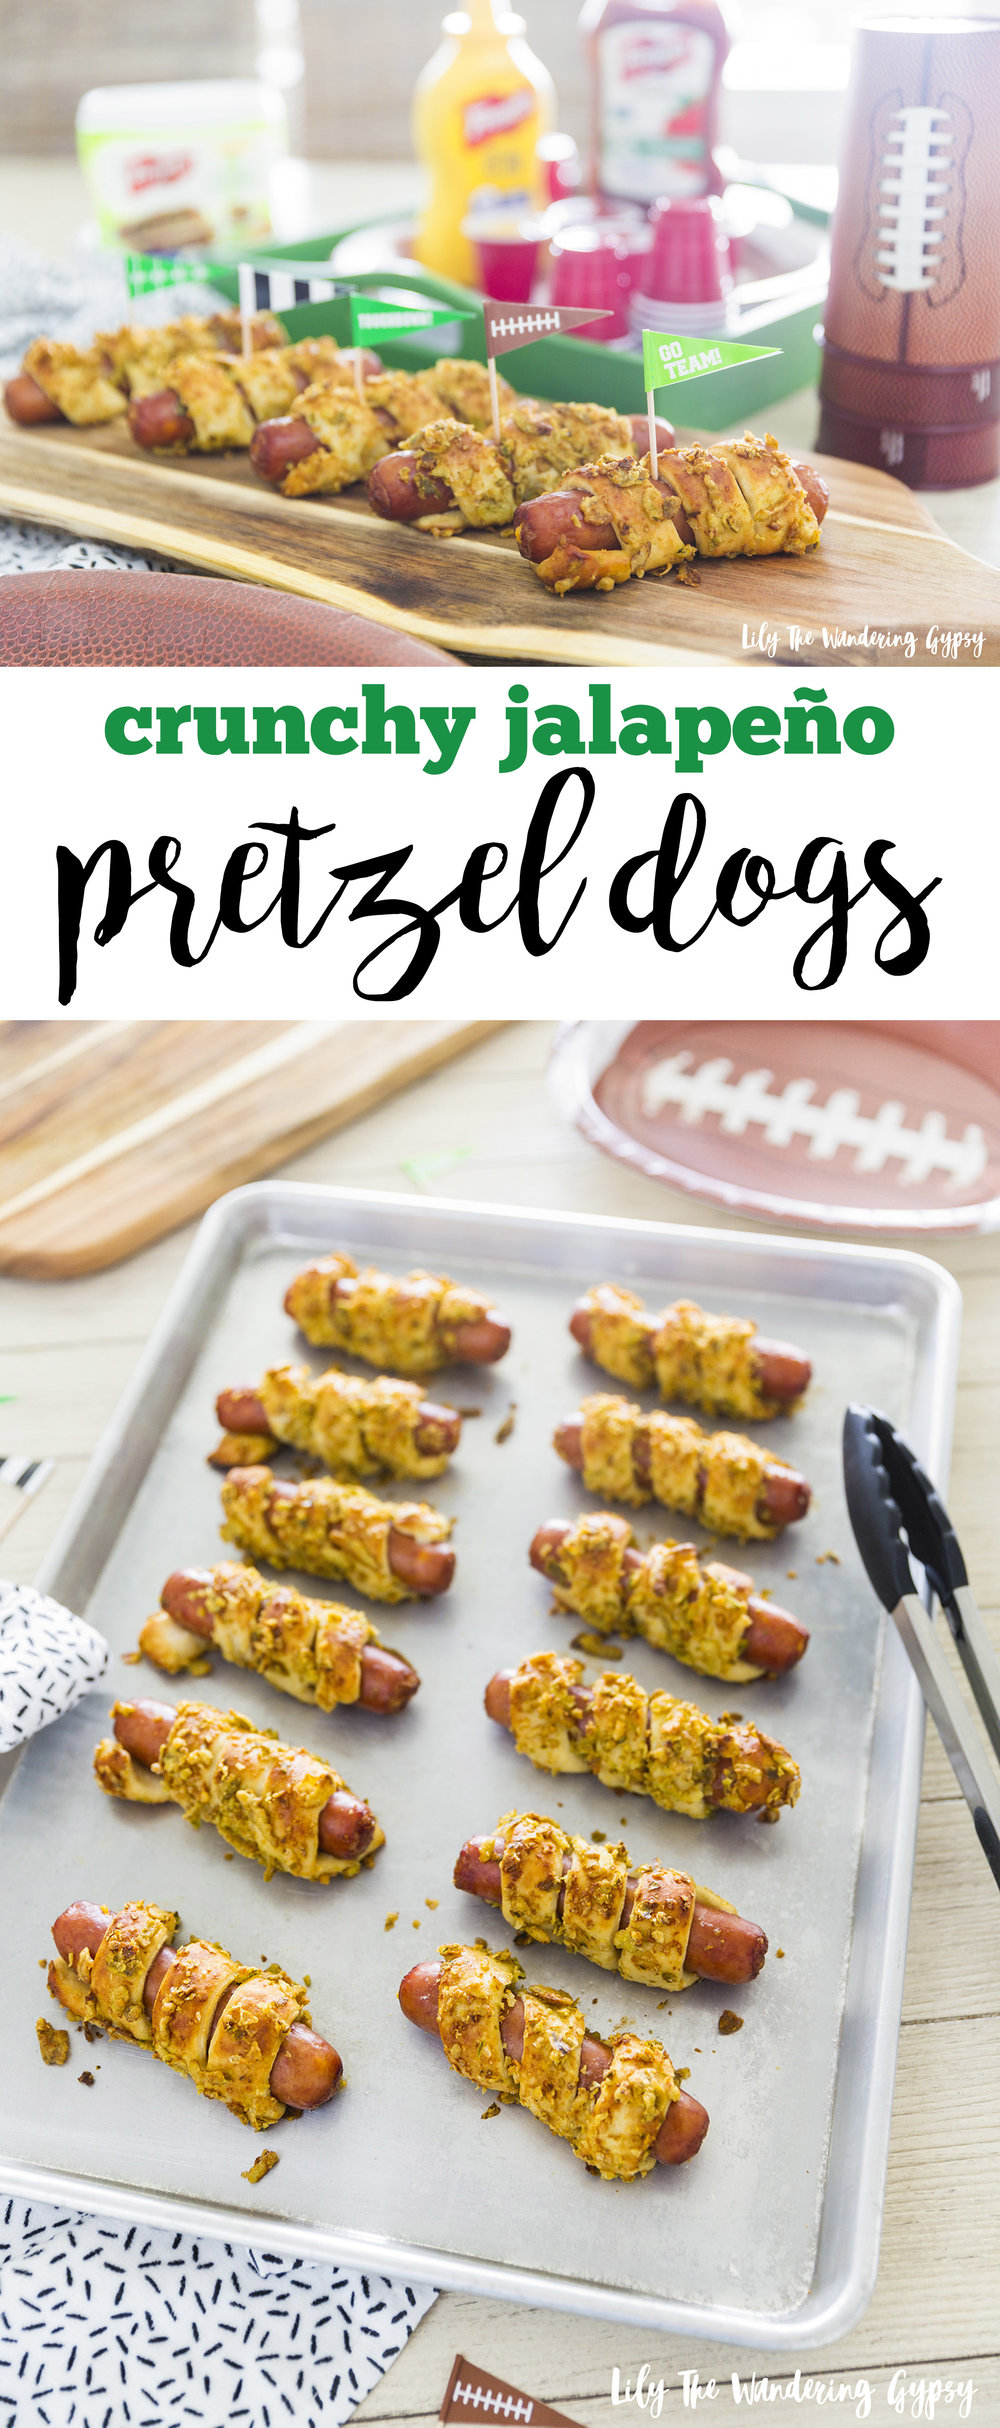 Delicious Crunchy Jalapeno Dogs - perfect for gam